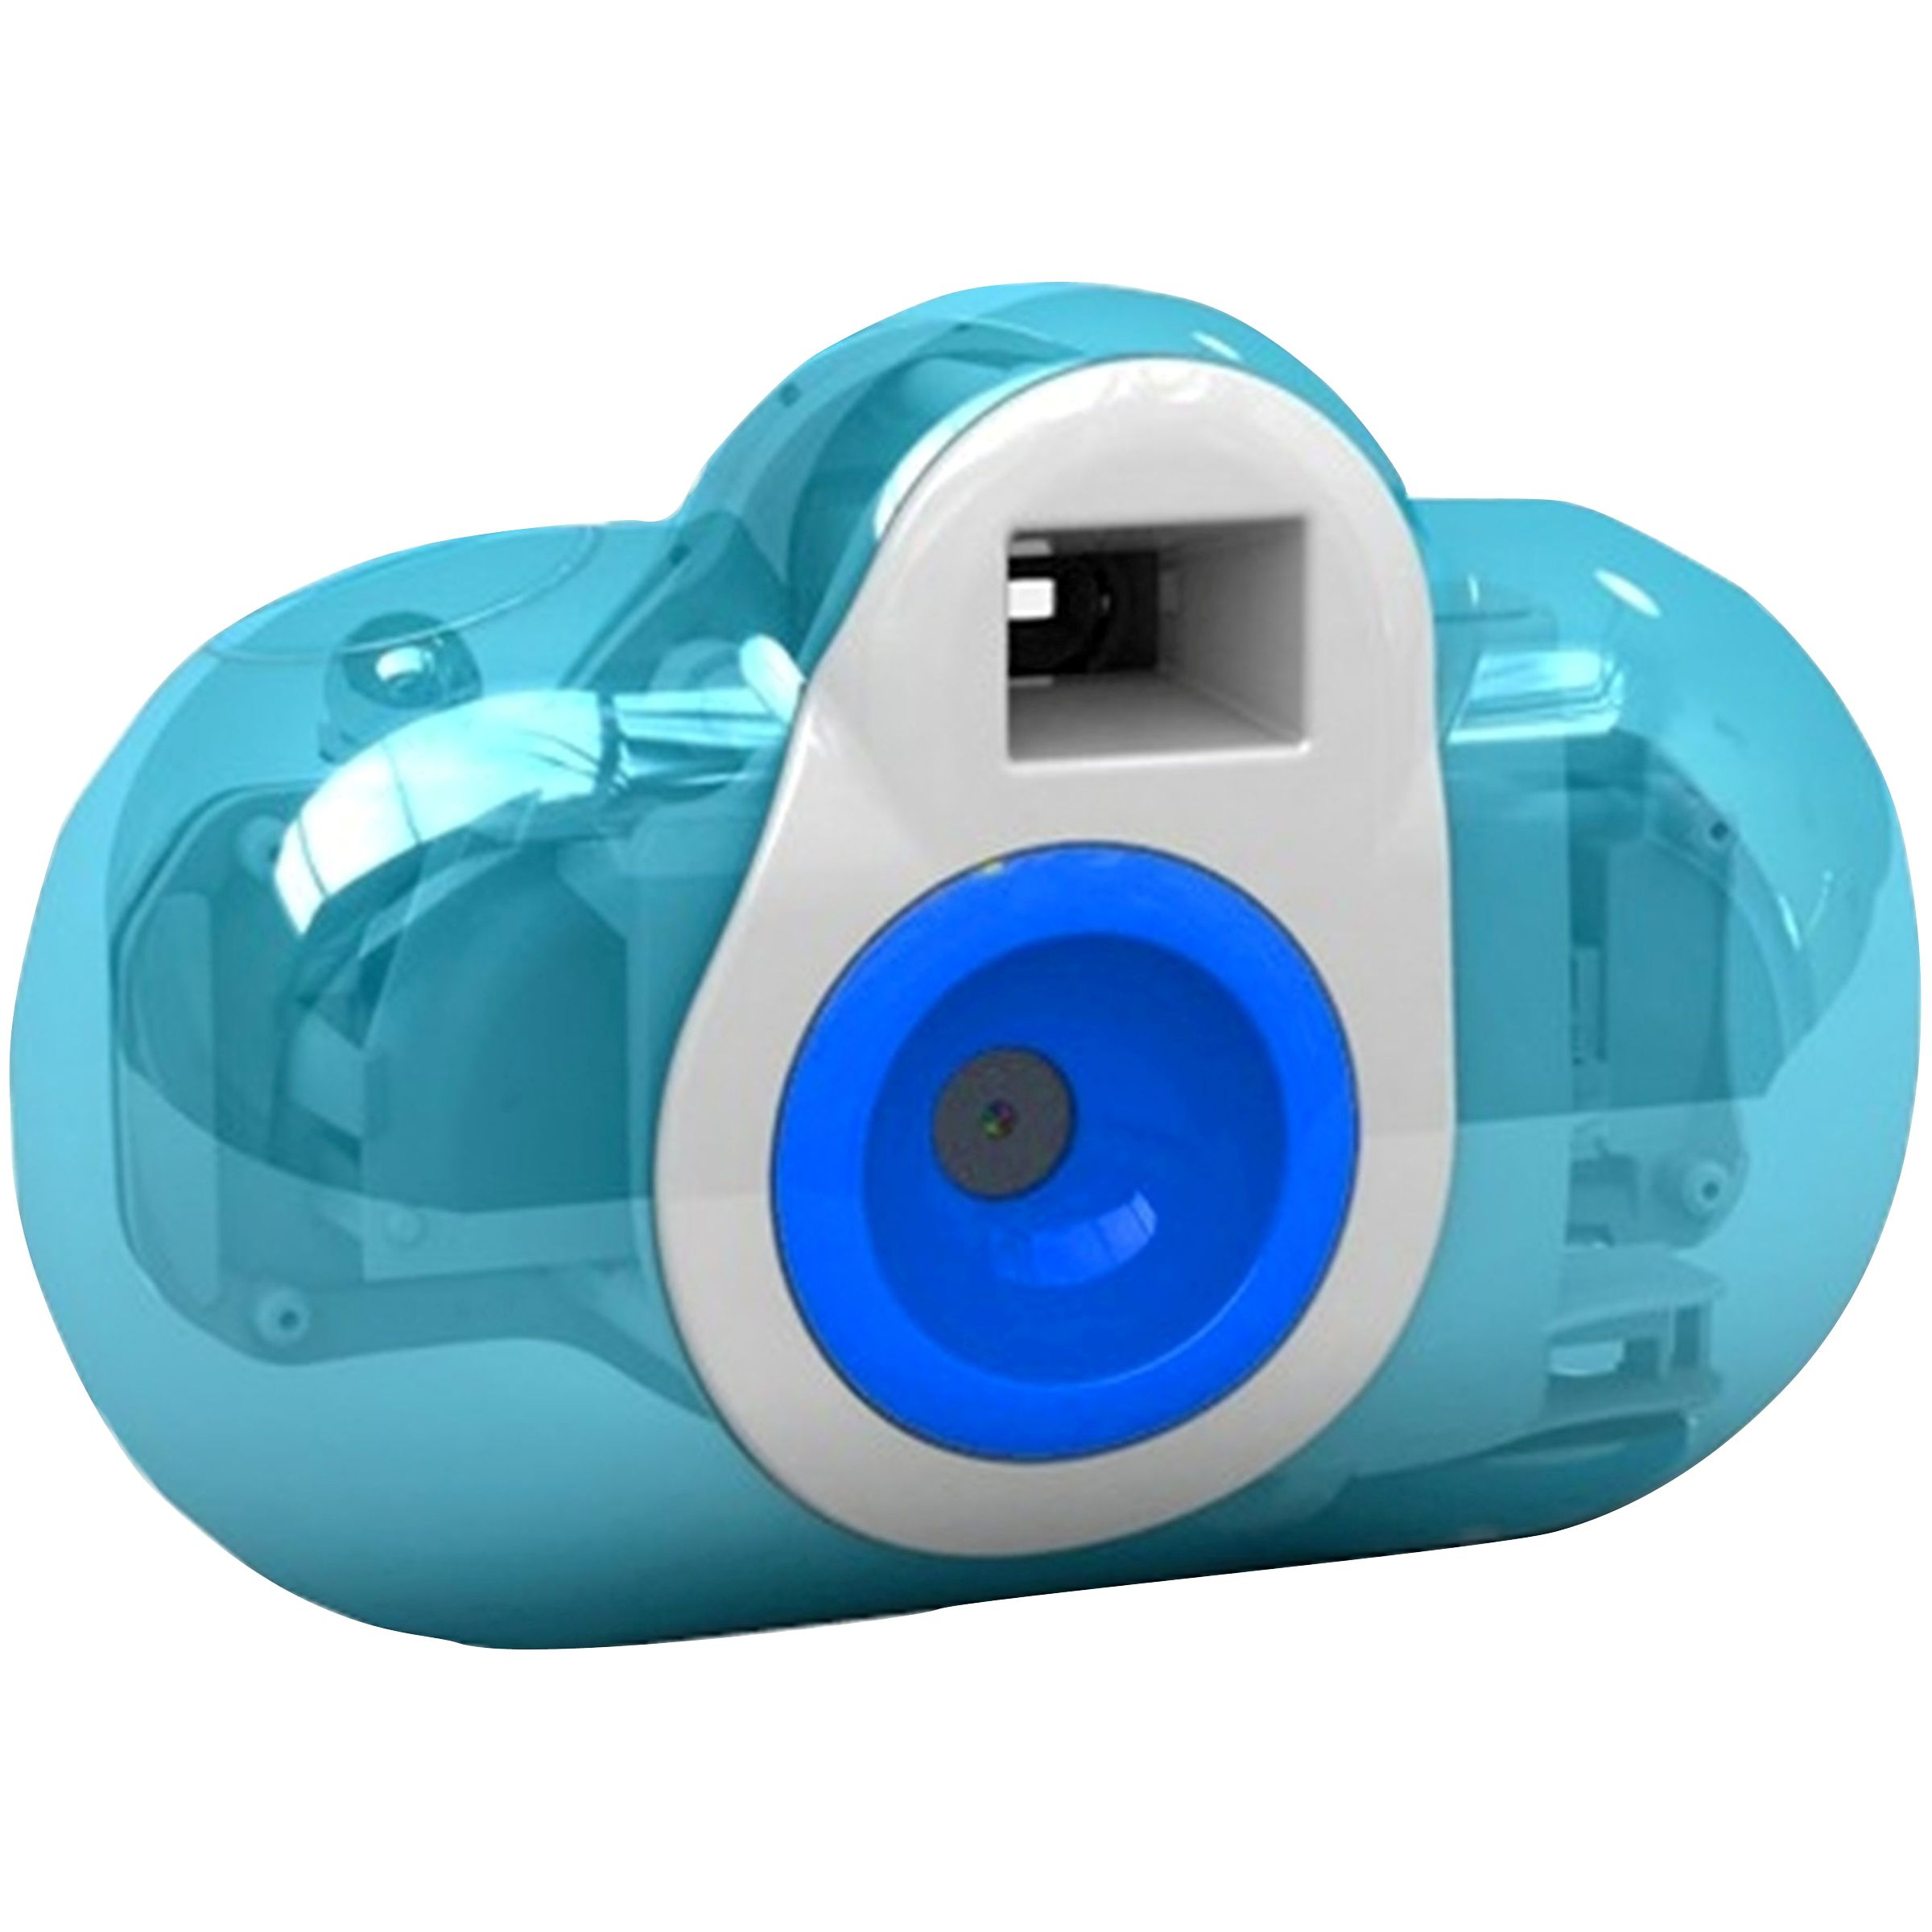 Cobra Digital 3-In-1 Squeeze DC150-B Digital Camera for Kids - Blue